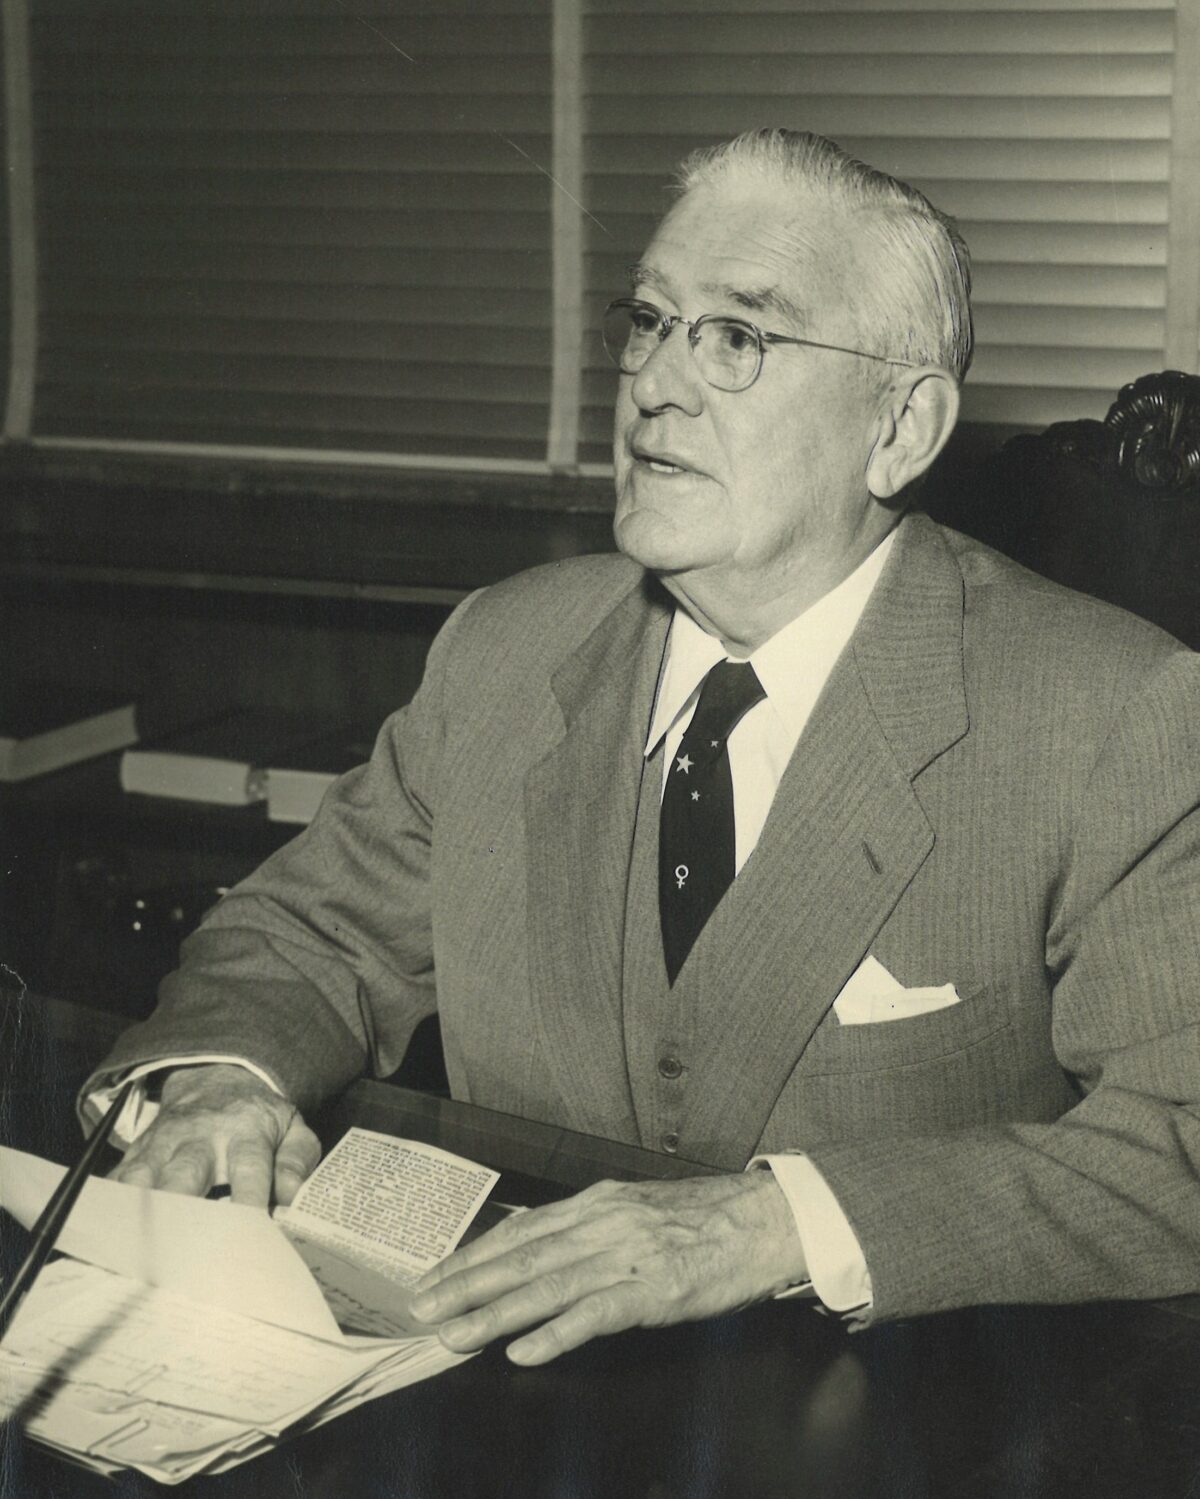 Joseph Breen in the 1950s